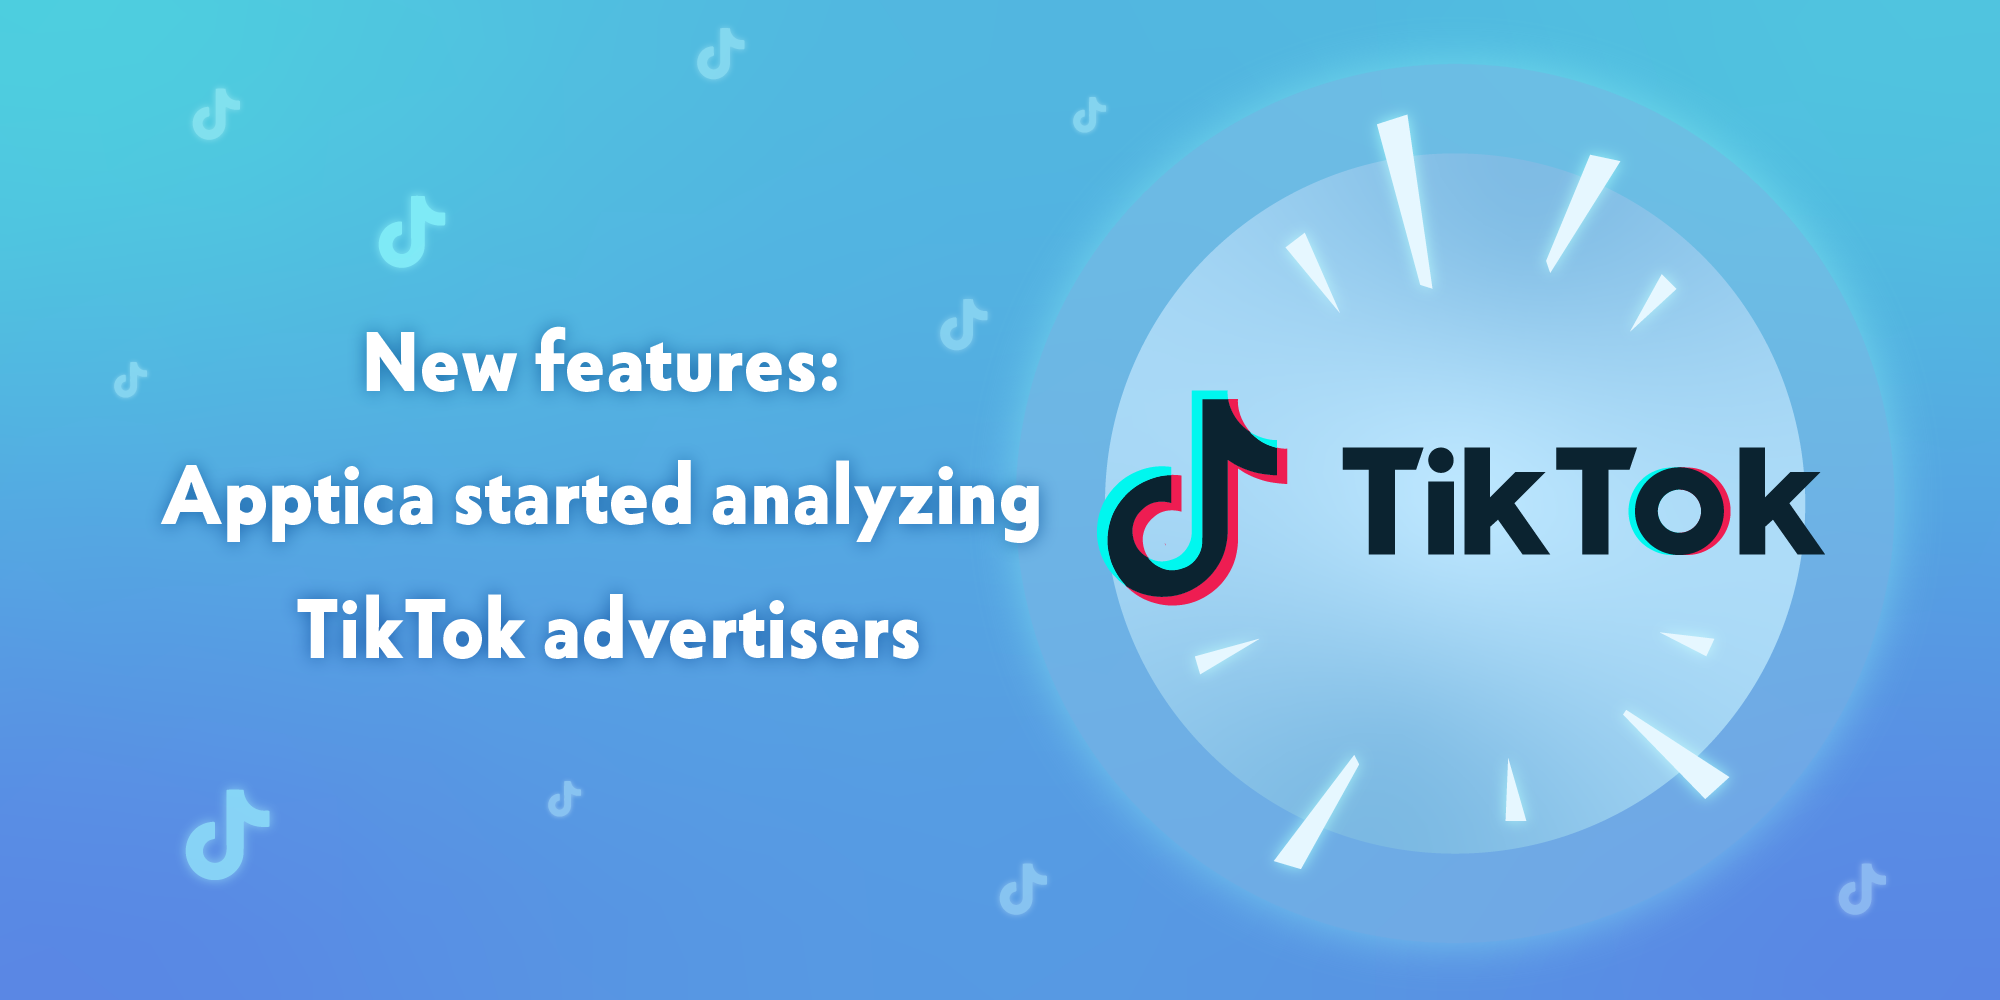 New features: Apptica started analyzing TikTok advertisers